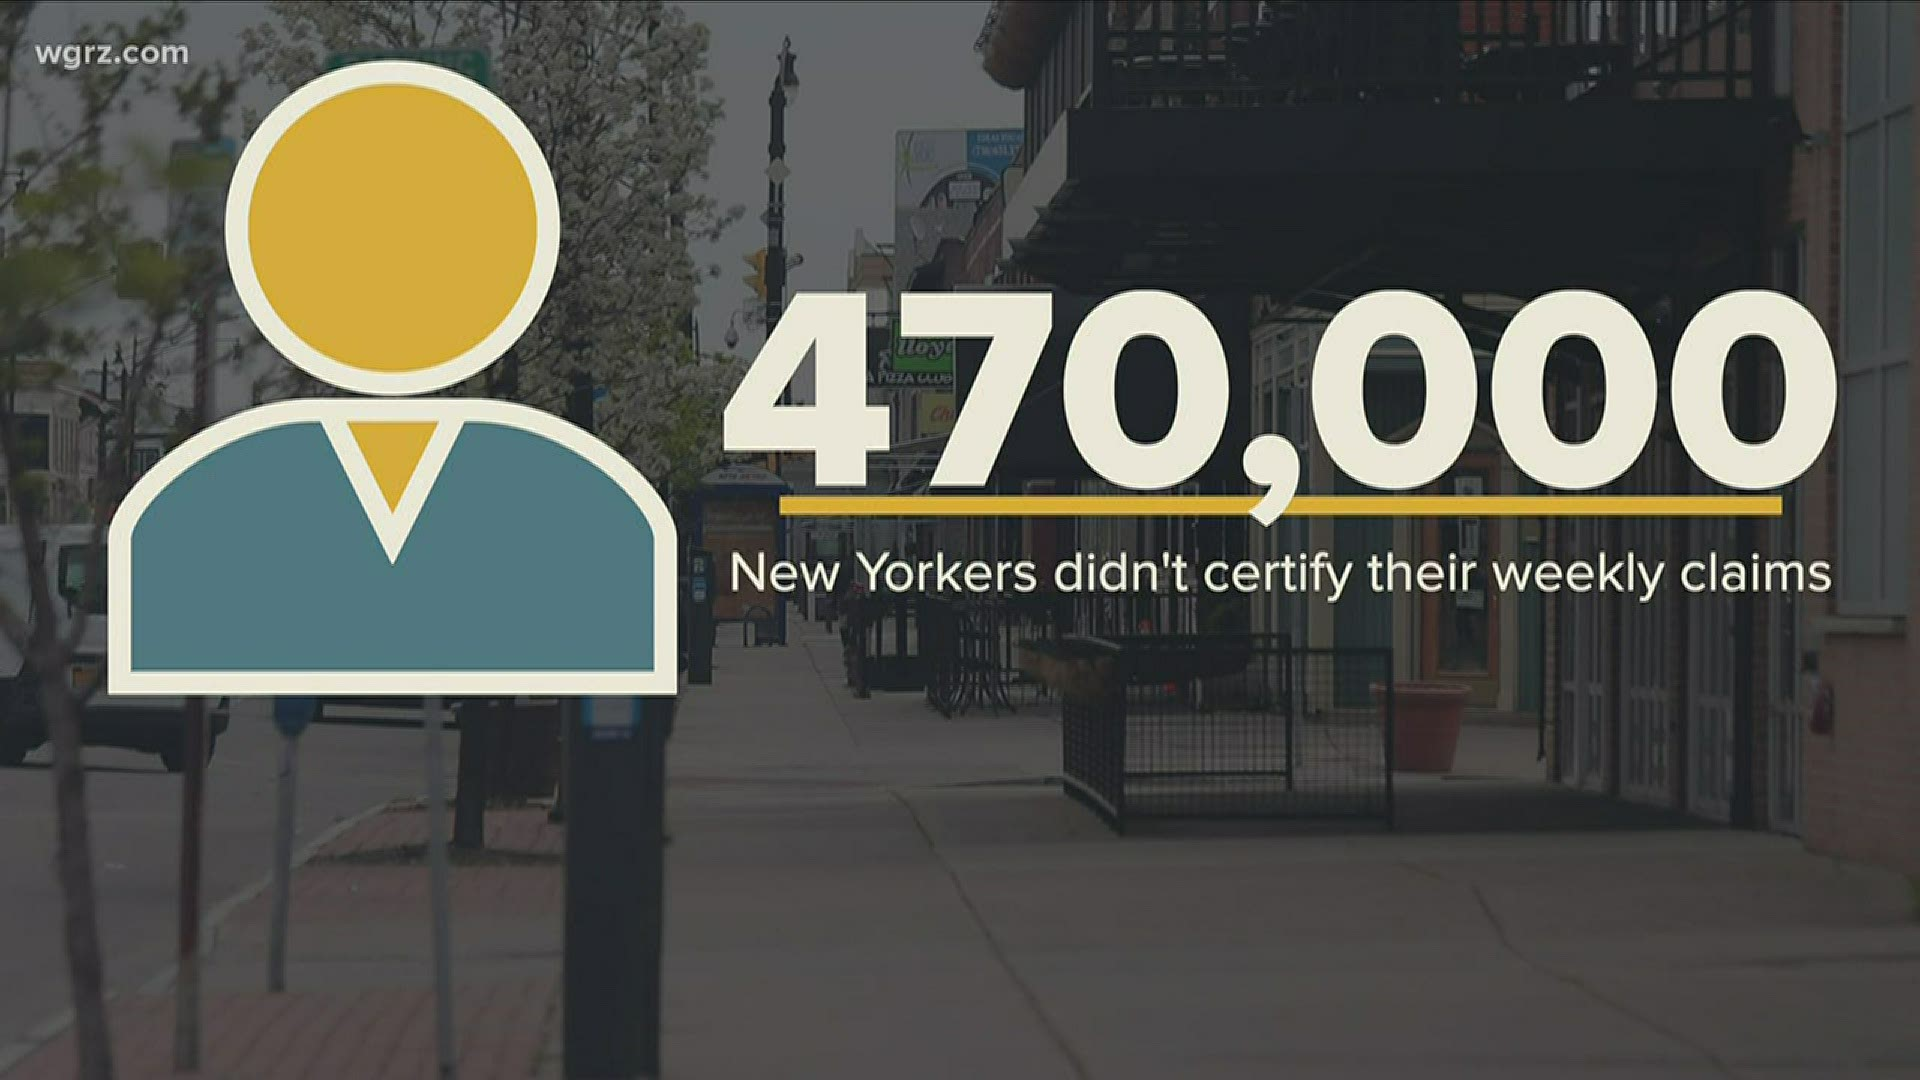 New York State to streamline certification process for unemployment claims  | wgrz.com